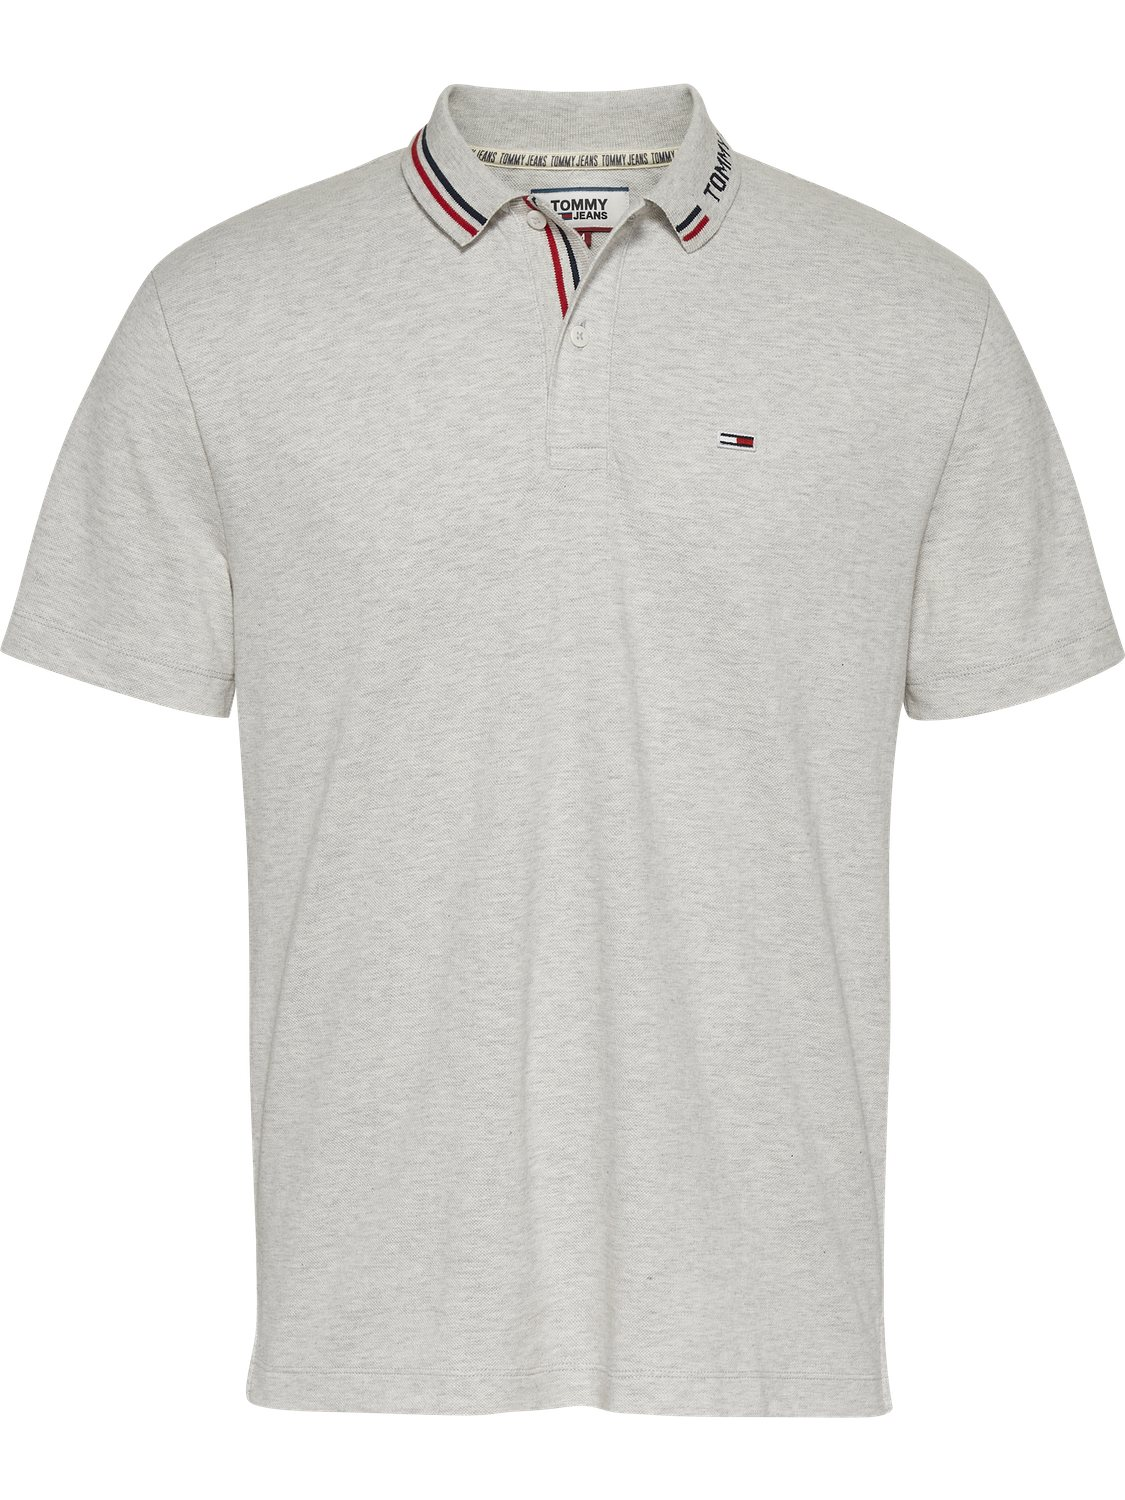 TOMMY HILFIGER - branded collar polo | Gate36 Hobro